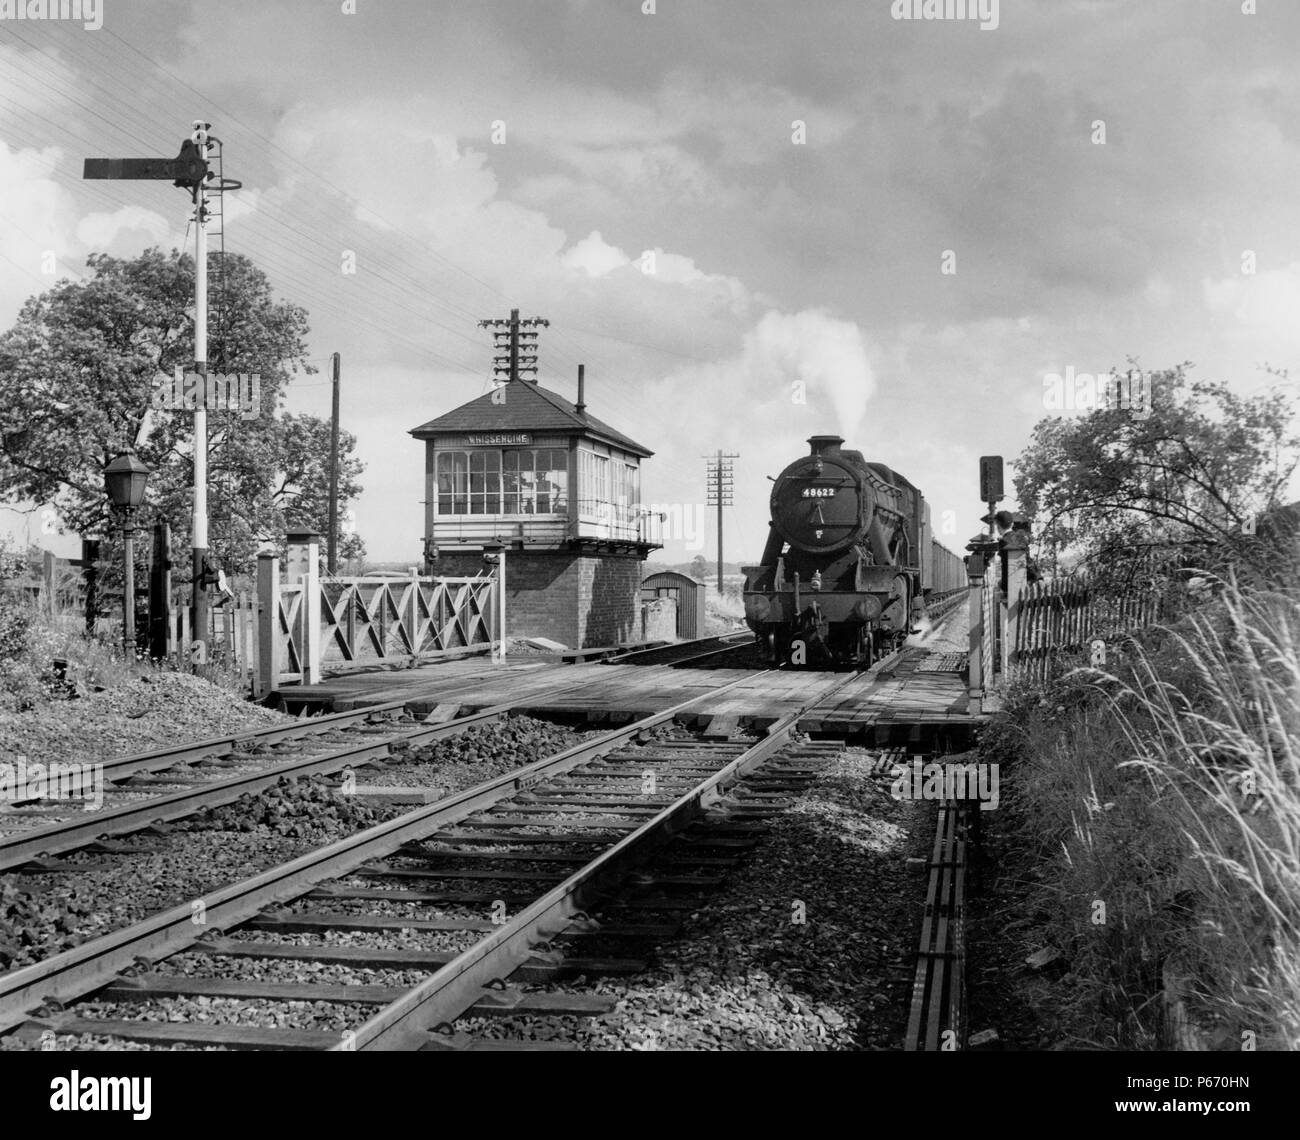 The location is Whissendine, between Melton Mowbray and Oakham on the Leicester to Peterborough line. The signalman in the MR box watches the photogra Stock Photo